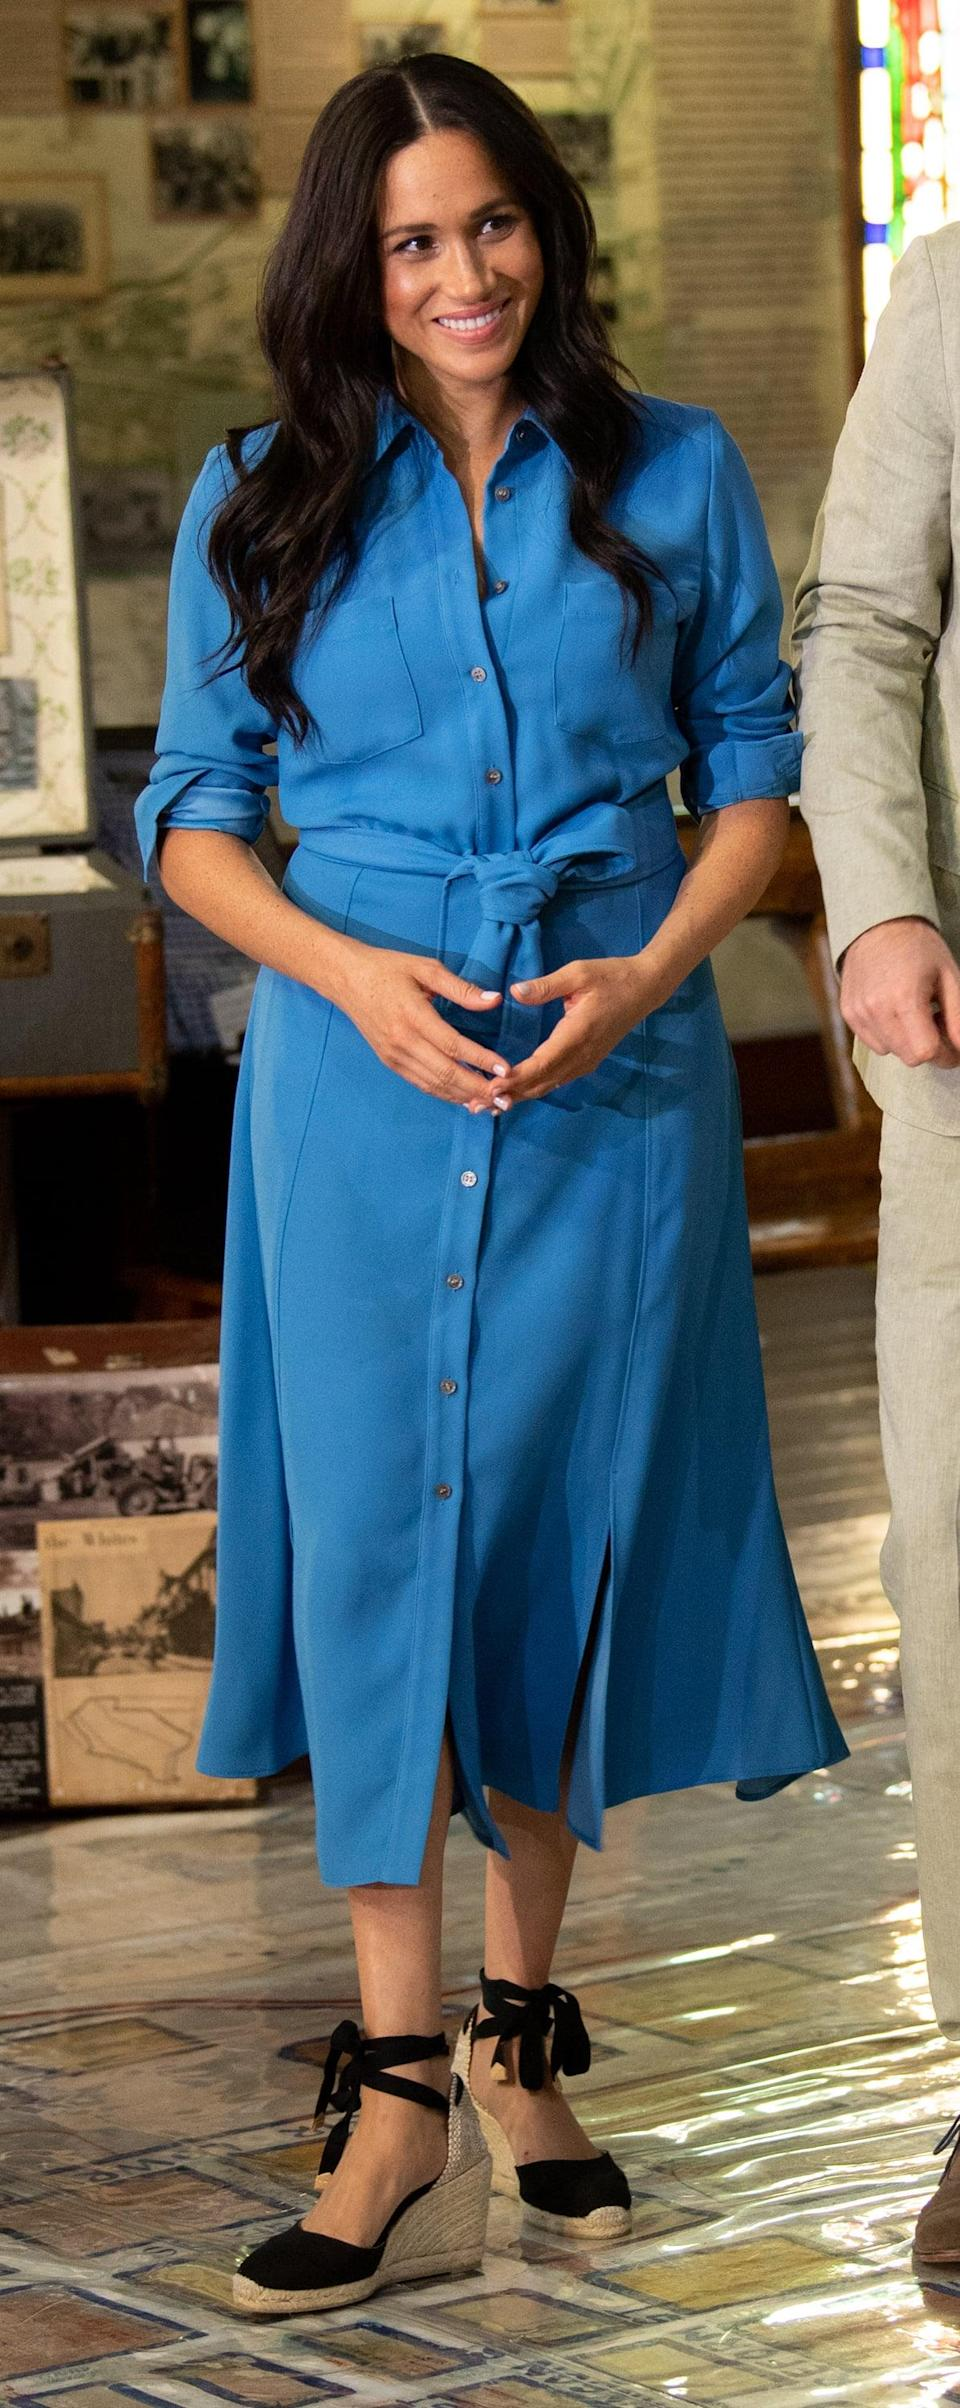 """<p>Meghan wore <a href=""""https://www.popsugar.com/fashion/meghan-markle-wears-blue-dress-again-2019-46665148"""" class=""""link rapid-noclick-resp"""" rel=""""nofollow noopener"""" target=""""_blank"""" data-ylk=""""slk:this sweet shirtdress once again to visit the District 6 Museum"""">this sweet shirtdress once again to visit the District 6 Museum</a> in Cape Town during her royal tour of Southern Africa in September 2019. </p>"""